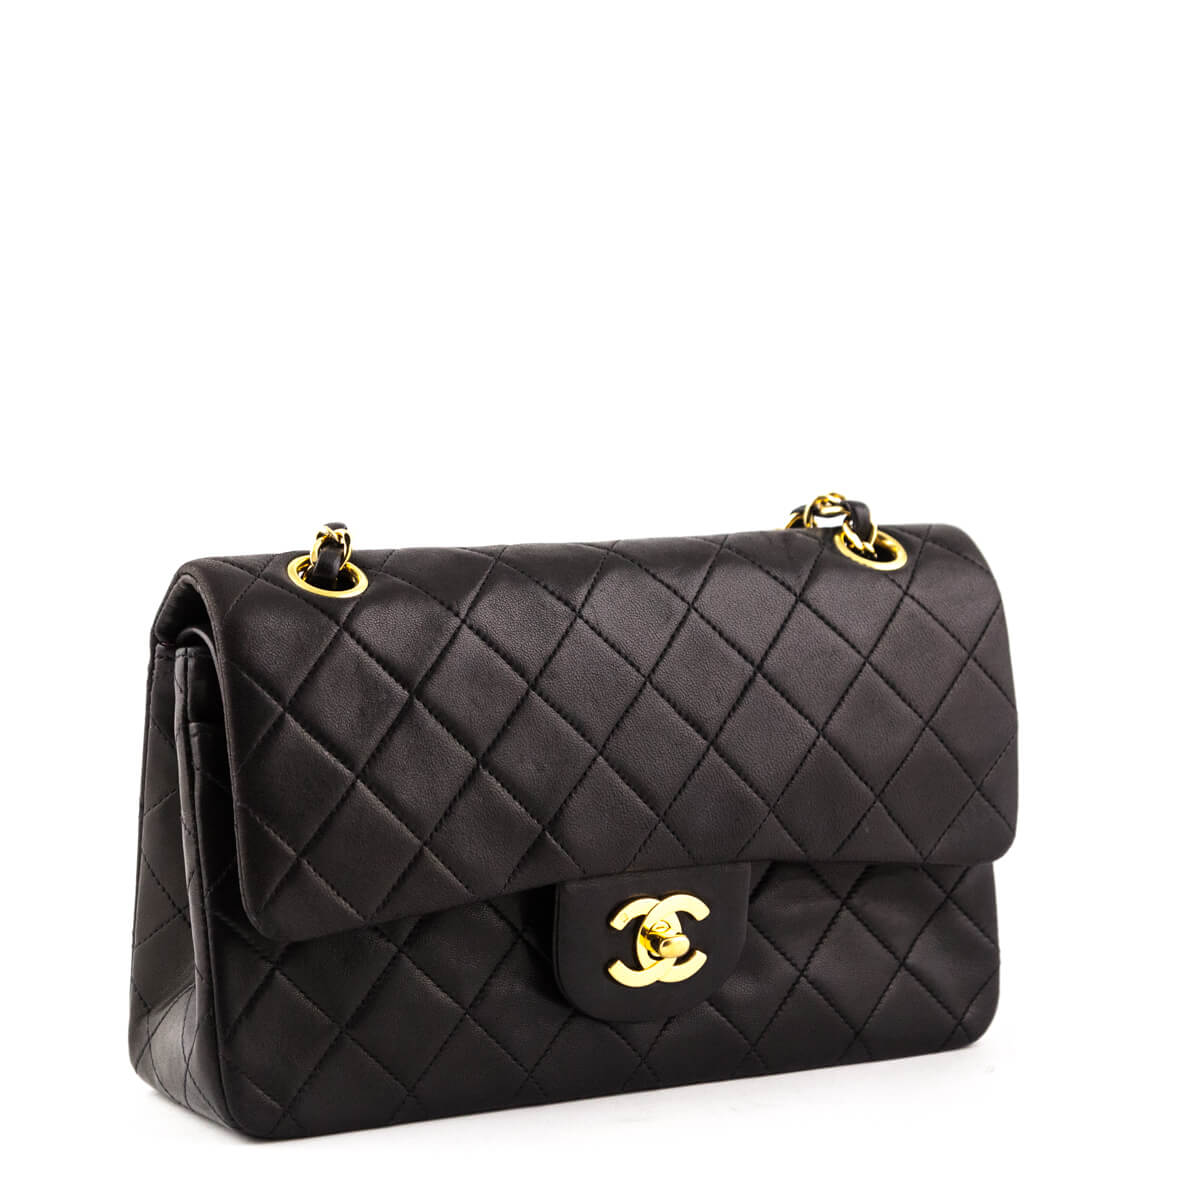 ... Chanel Black Lambskin Vintage Small Double Flap Bag GHW - LOVE that BAG  - Preowned Authentic ... 84ada61b268d9